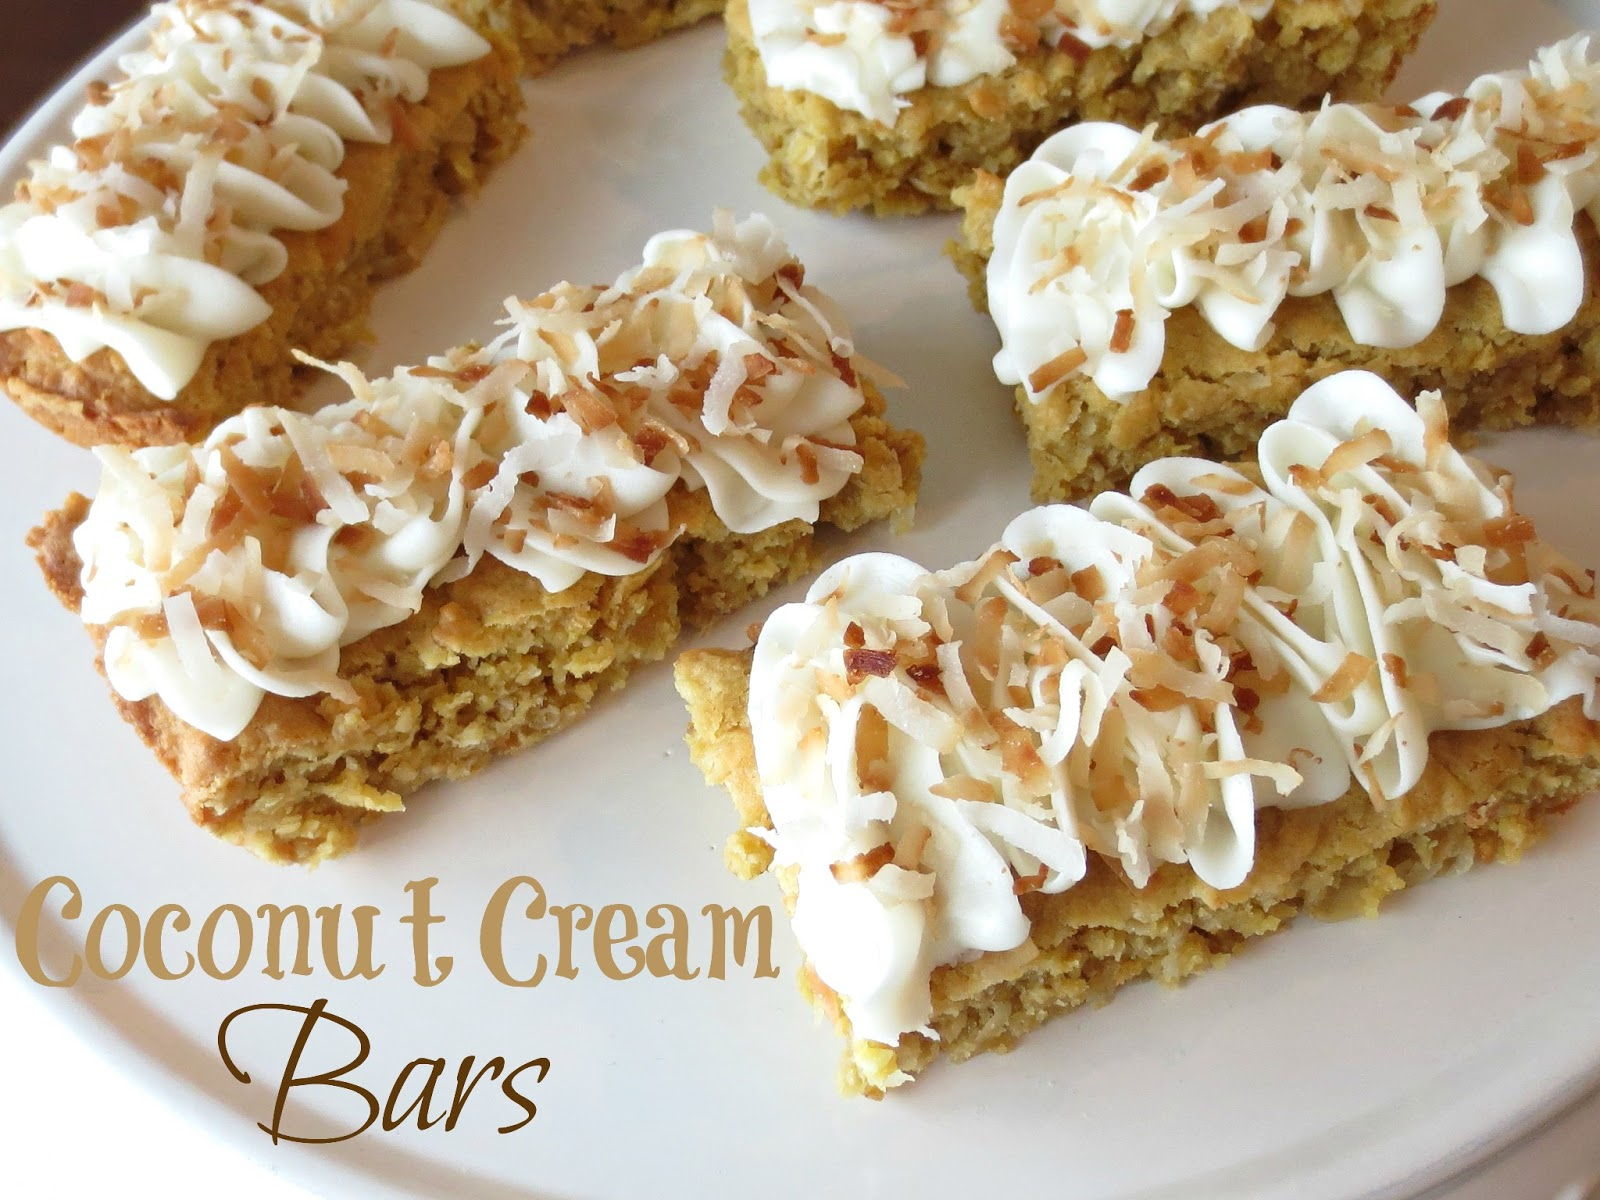 Kaitlin in the Kitchen: Coconut Cream Bars